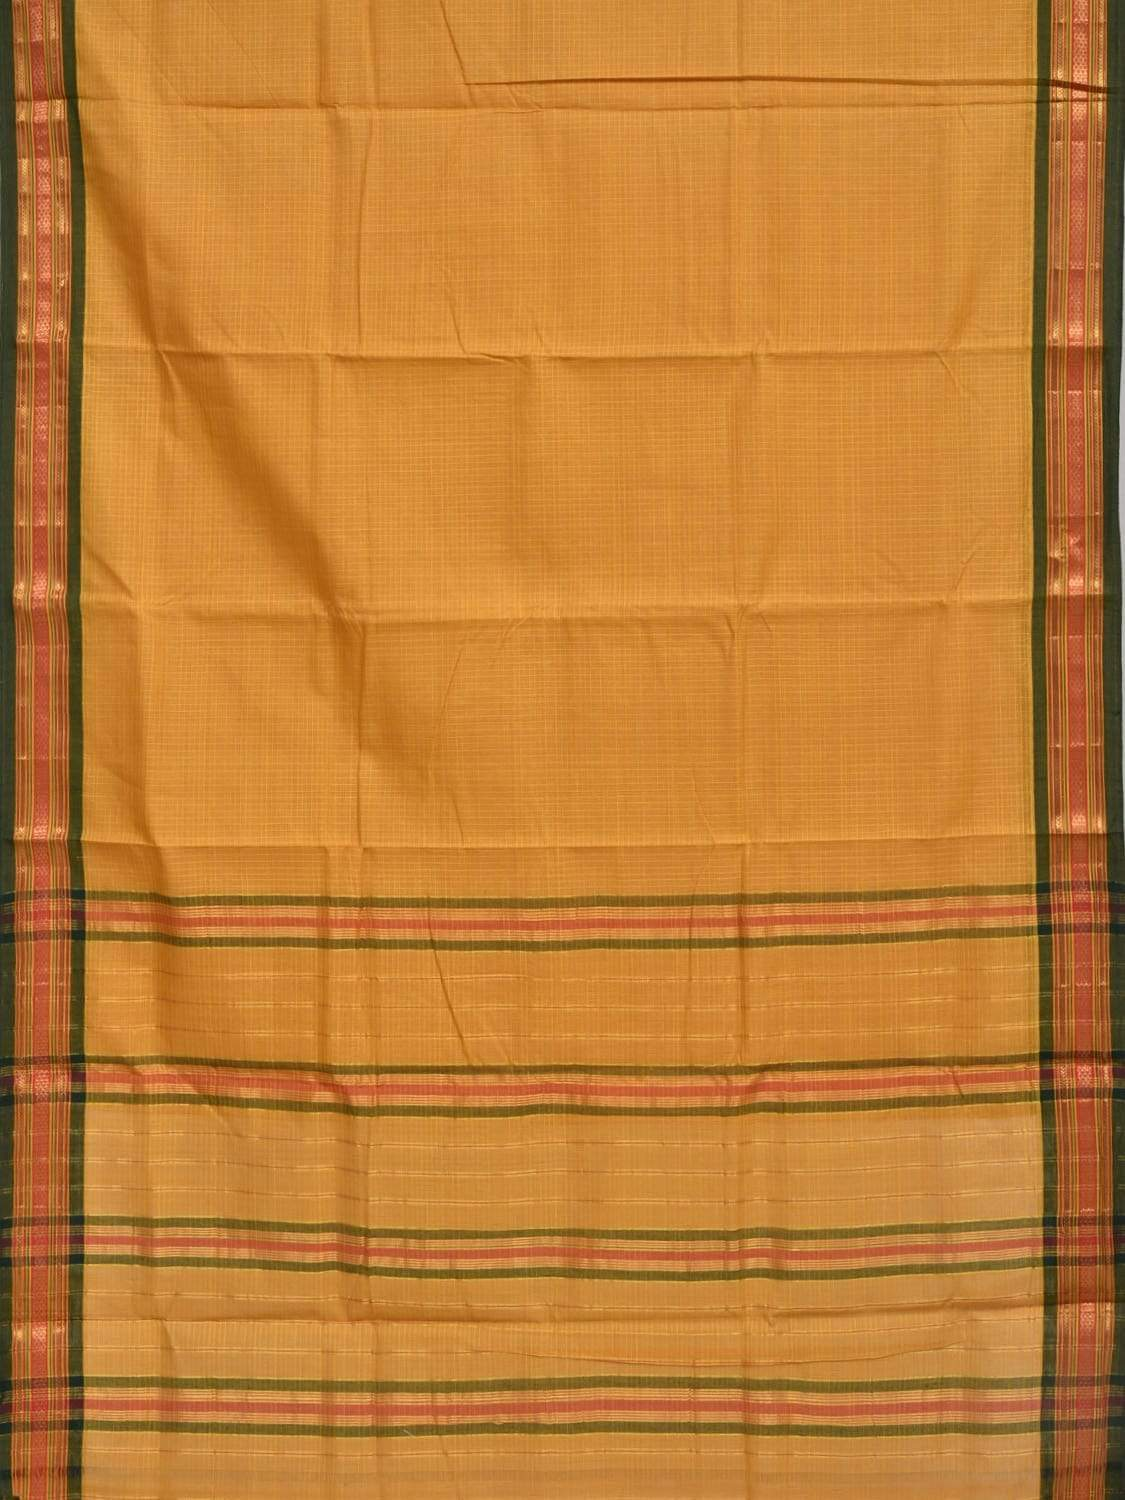 Mustard Narayanpet Cotton Handloom Saree with Checks and Border Design No Blouse np0244